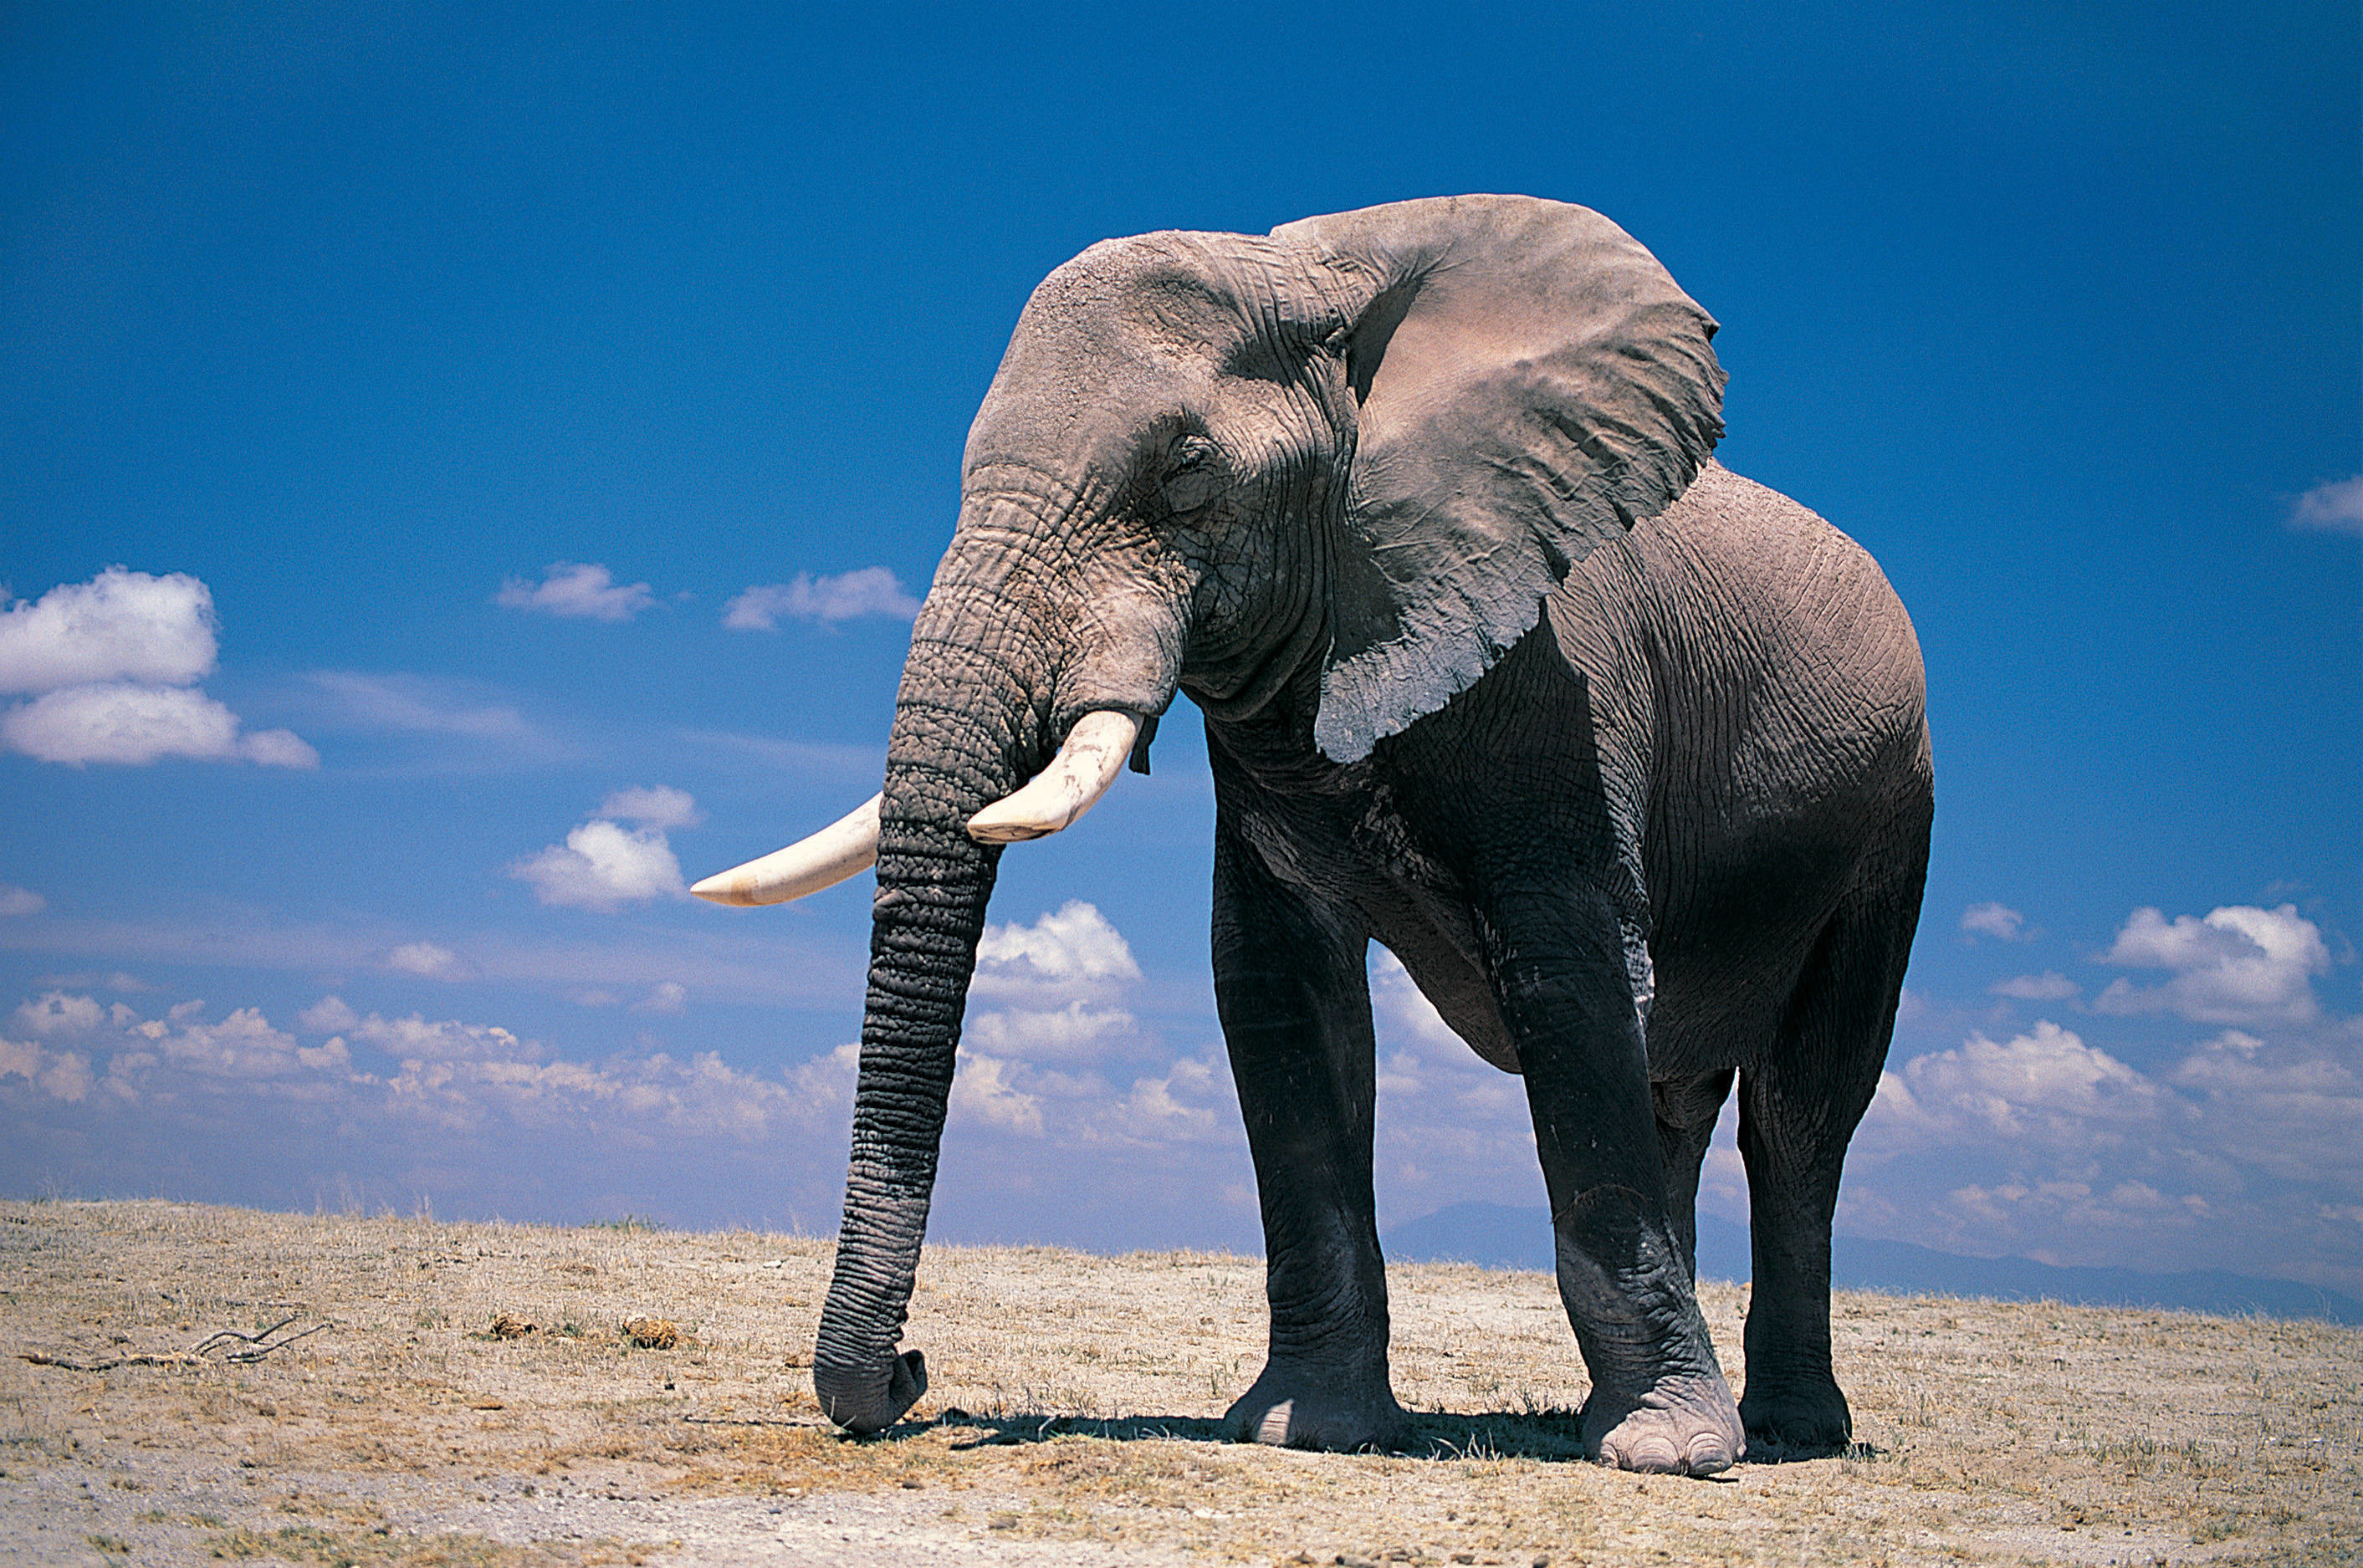 Res: 2825x1875, Elephant Wallpapers Free